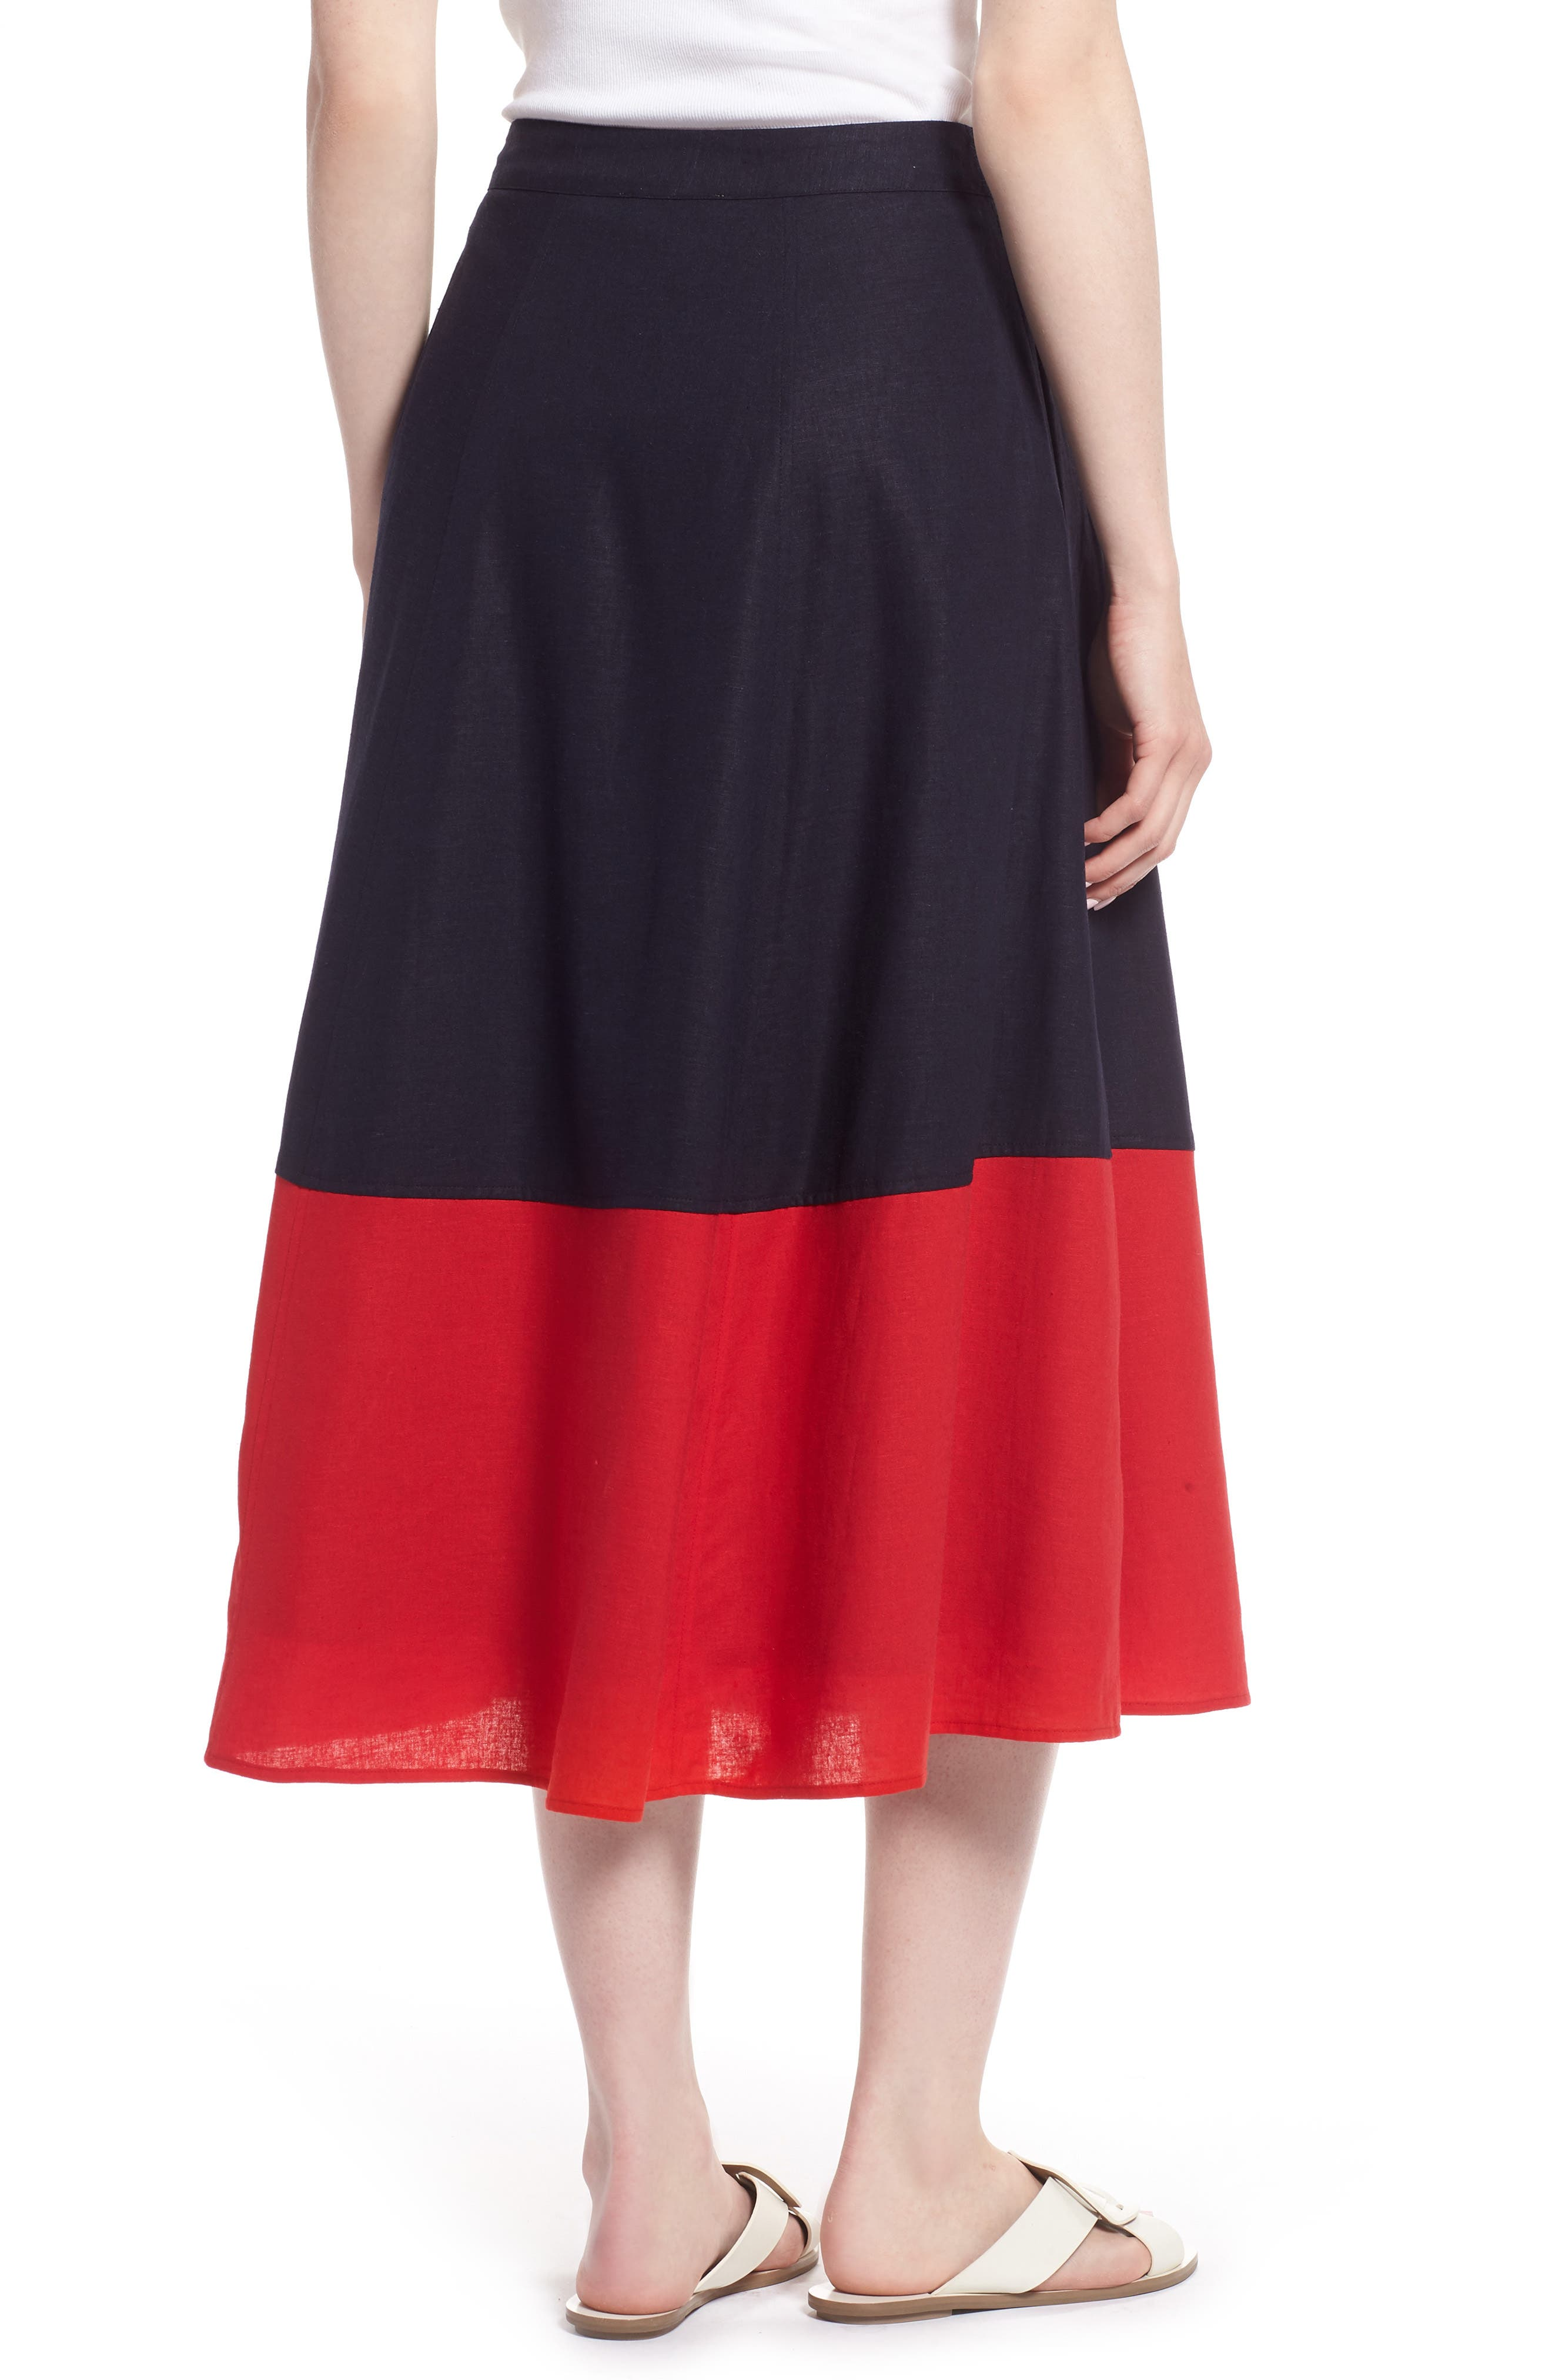 Colorblock Linen Blend Skirt,                             Alternate thumbnail 2, color,                             Navy- Red Colorblock